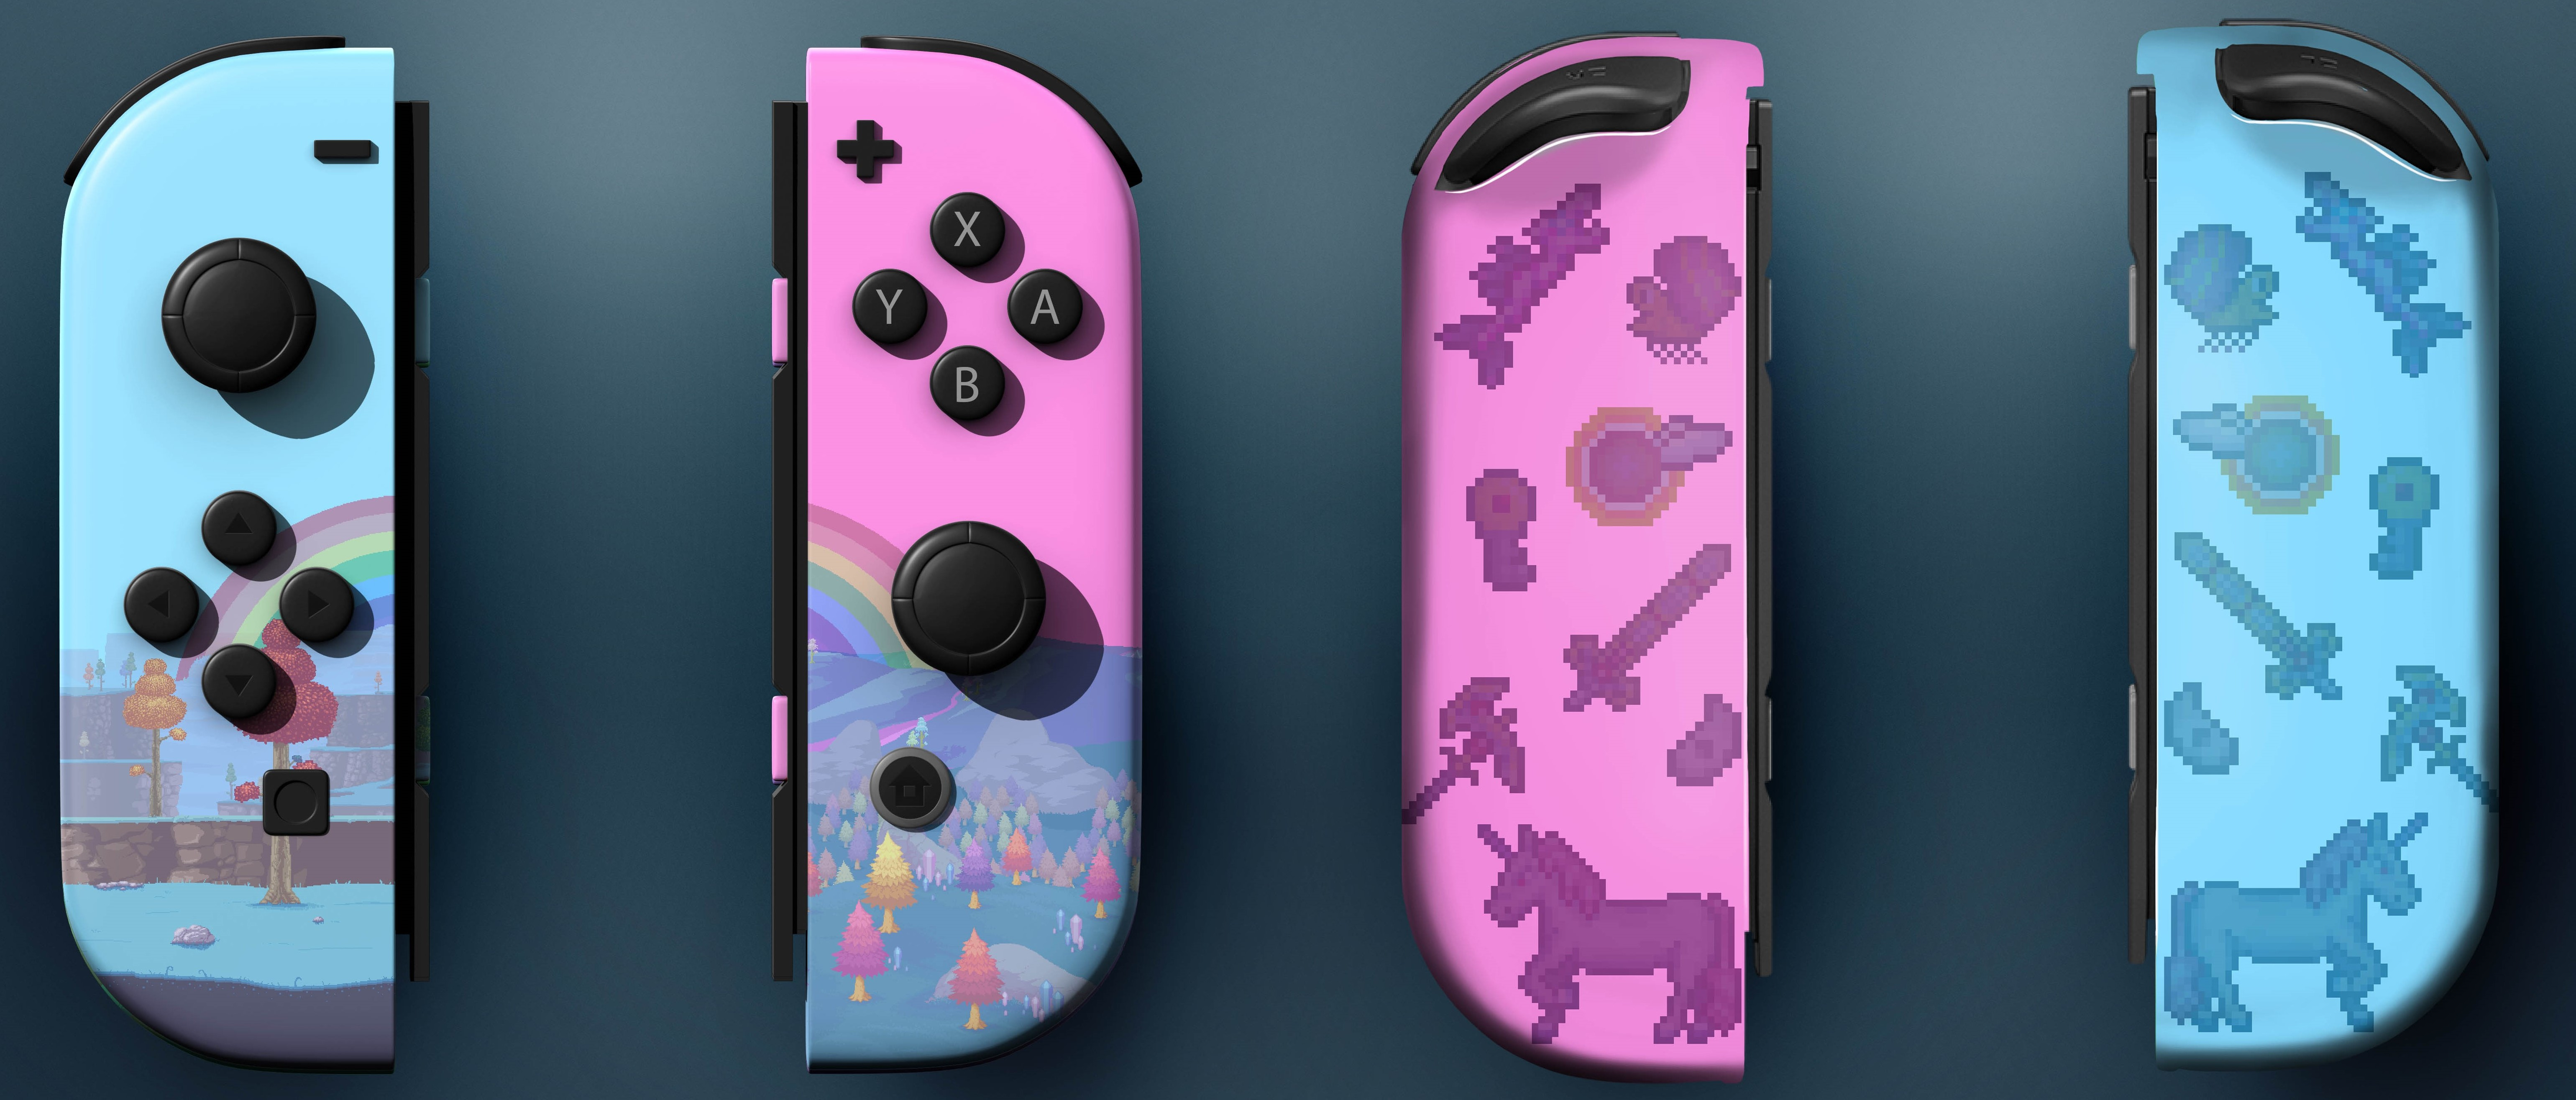 EGG Hallowed JoyCon tcf.jpg